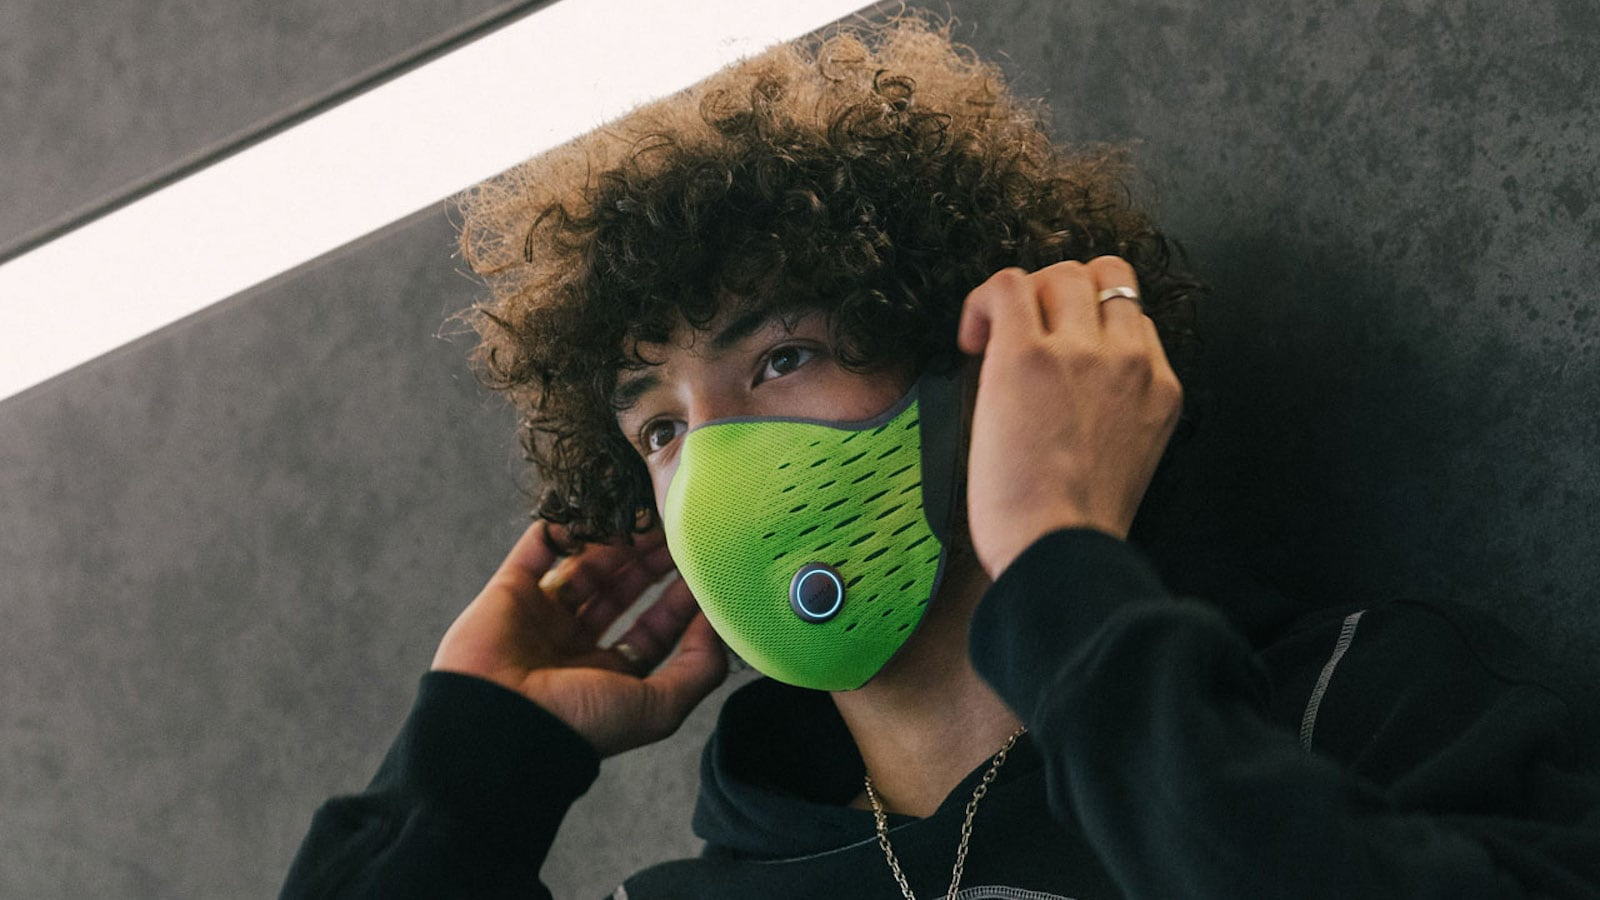 AirPop Active+ Smart Mask monitors your breathing and the air quality